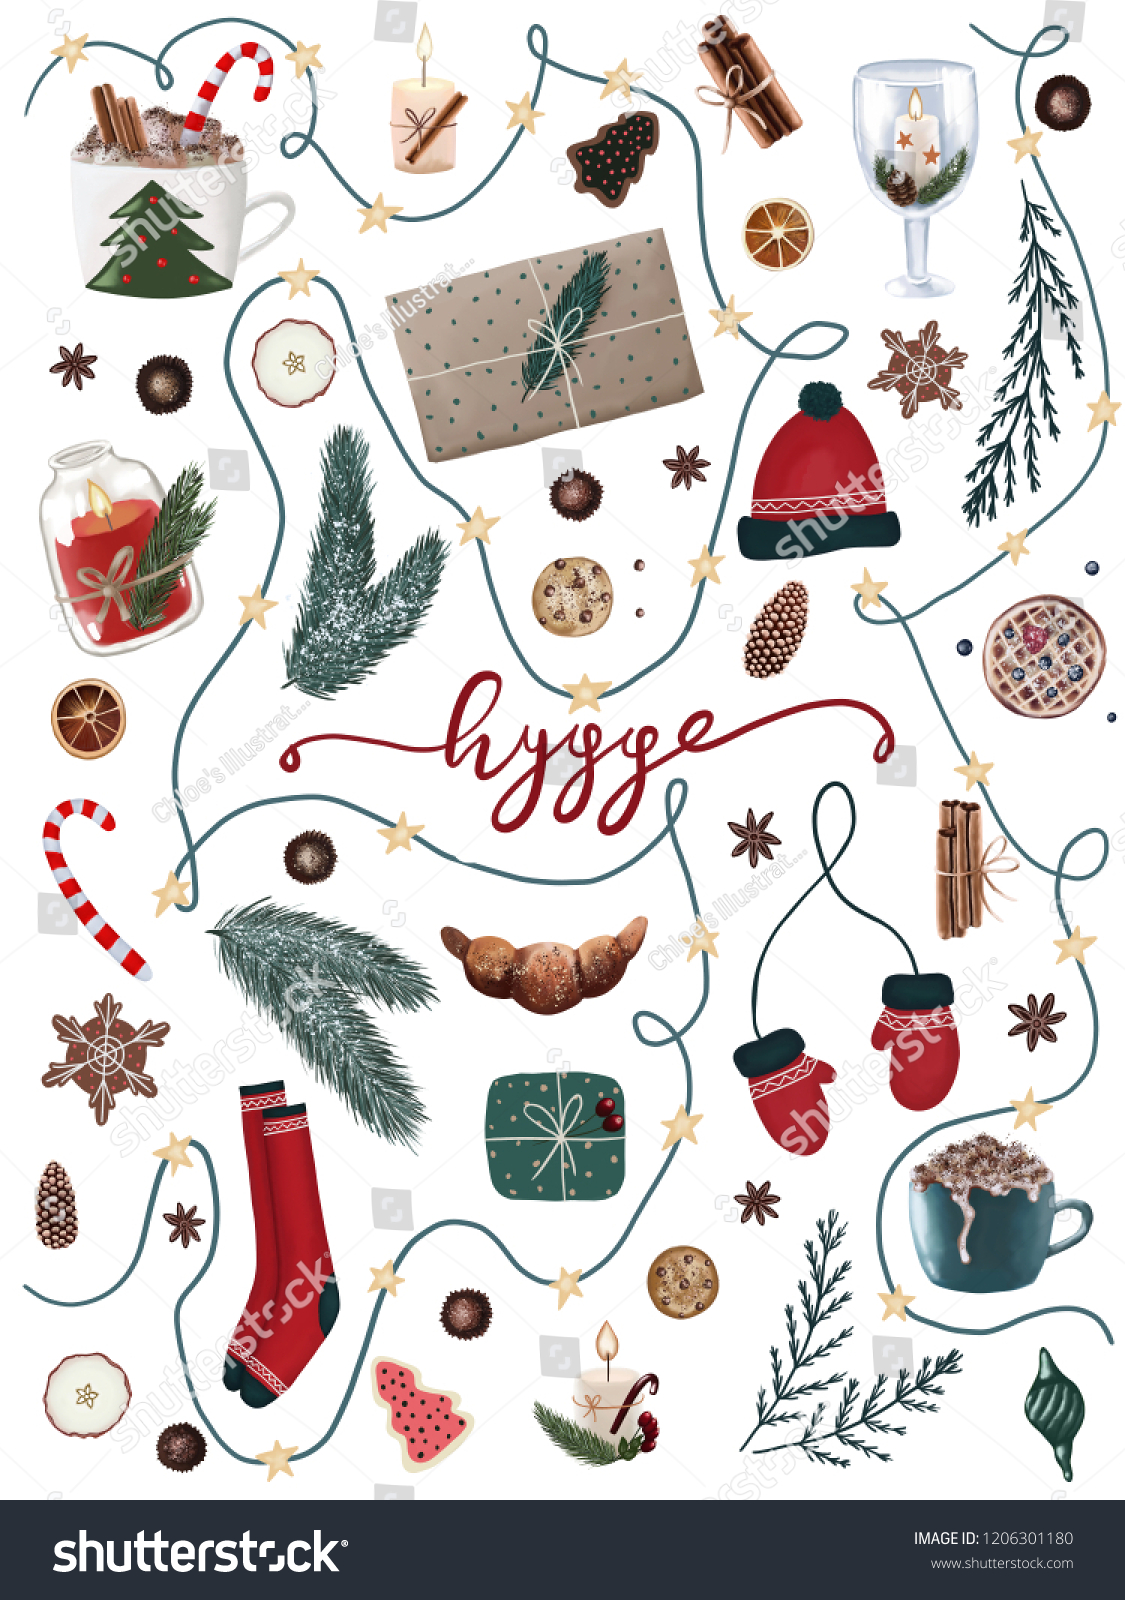 stock-photo-hygge-christmas-collection-o